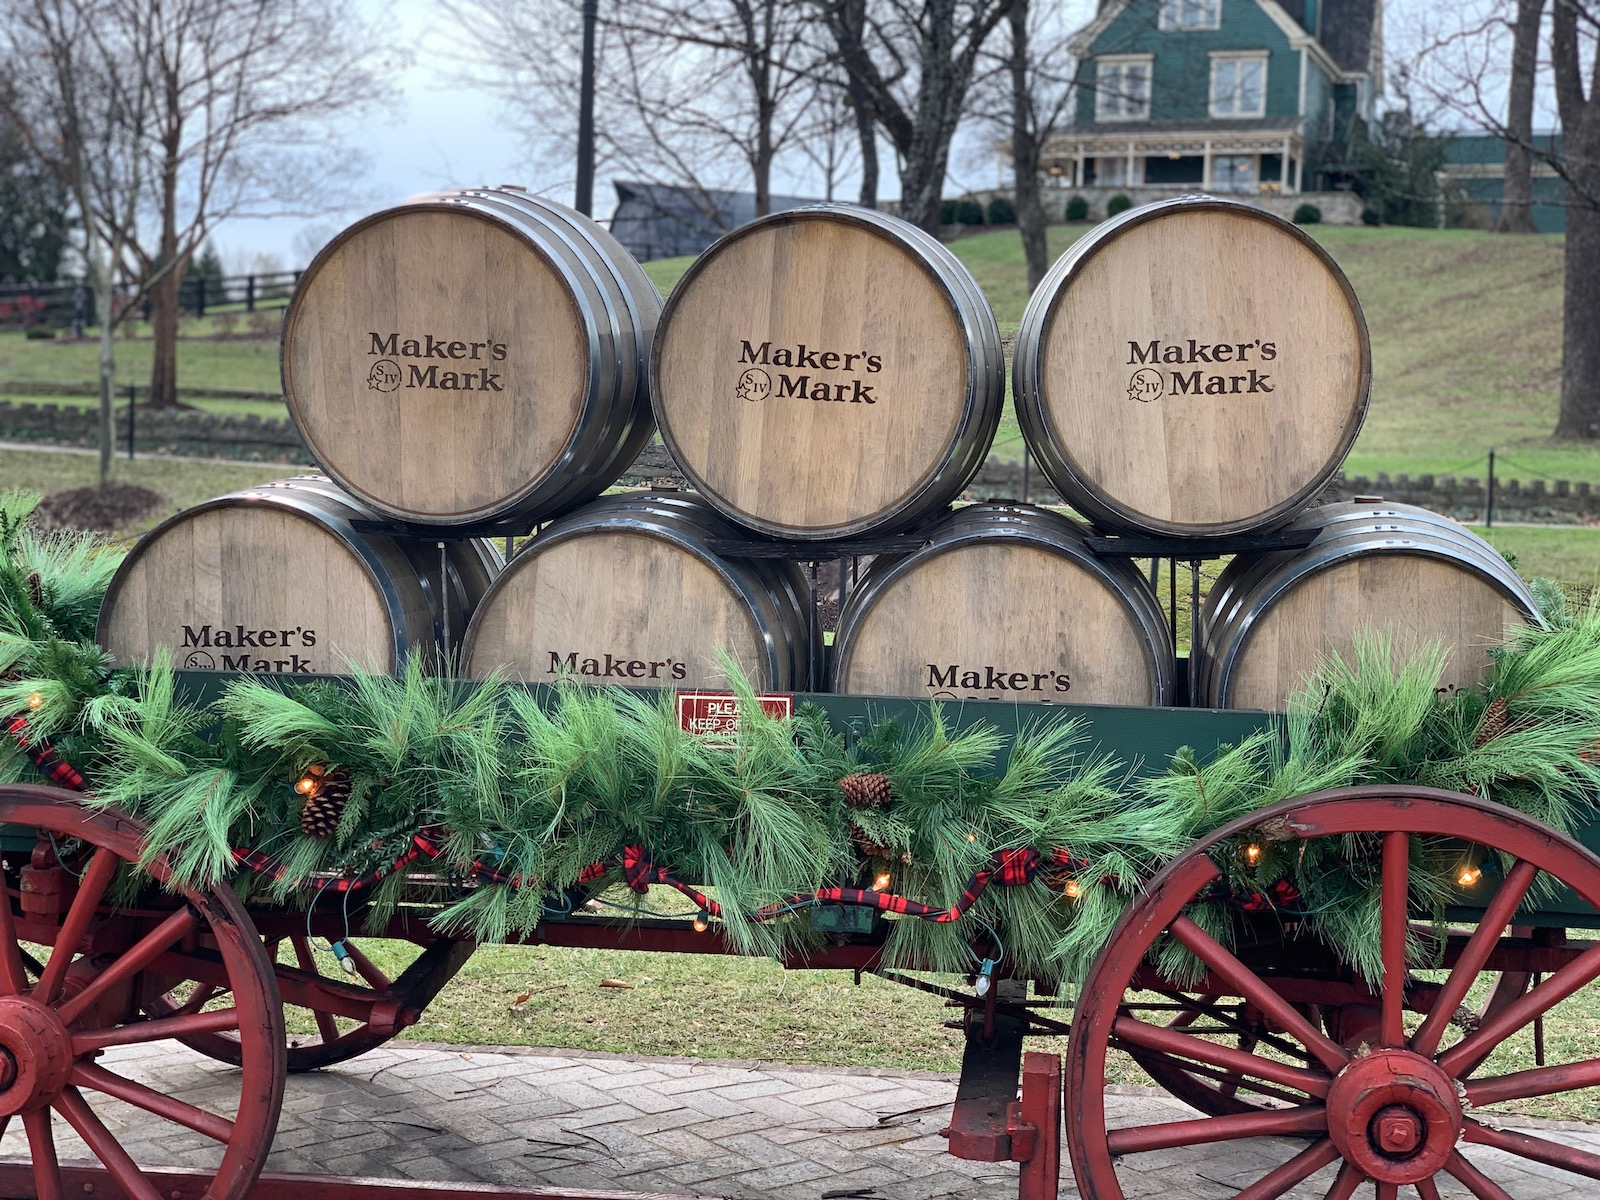 Maker's Mark Distillery in December